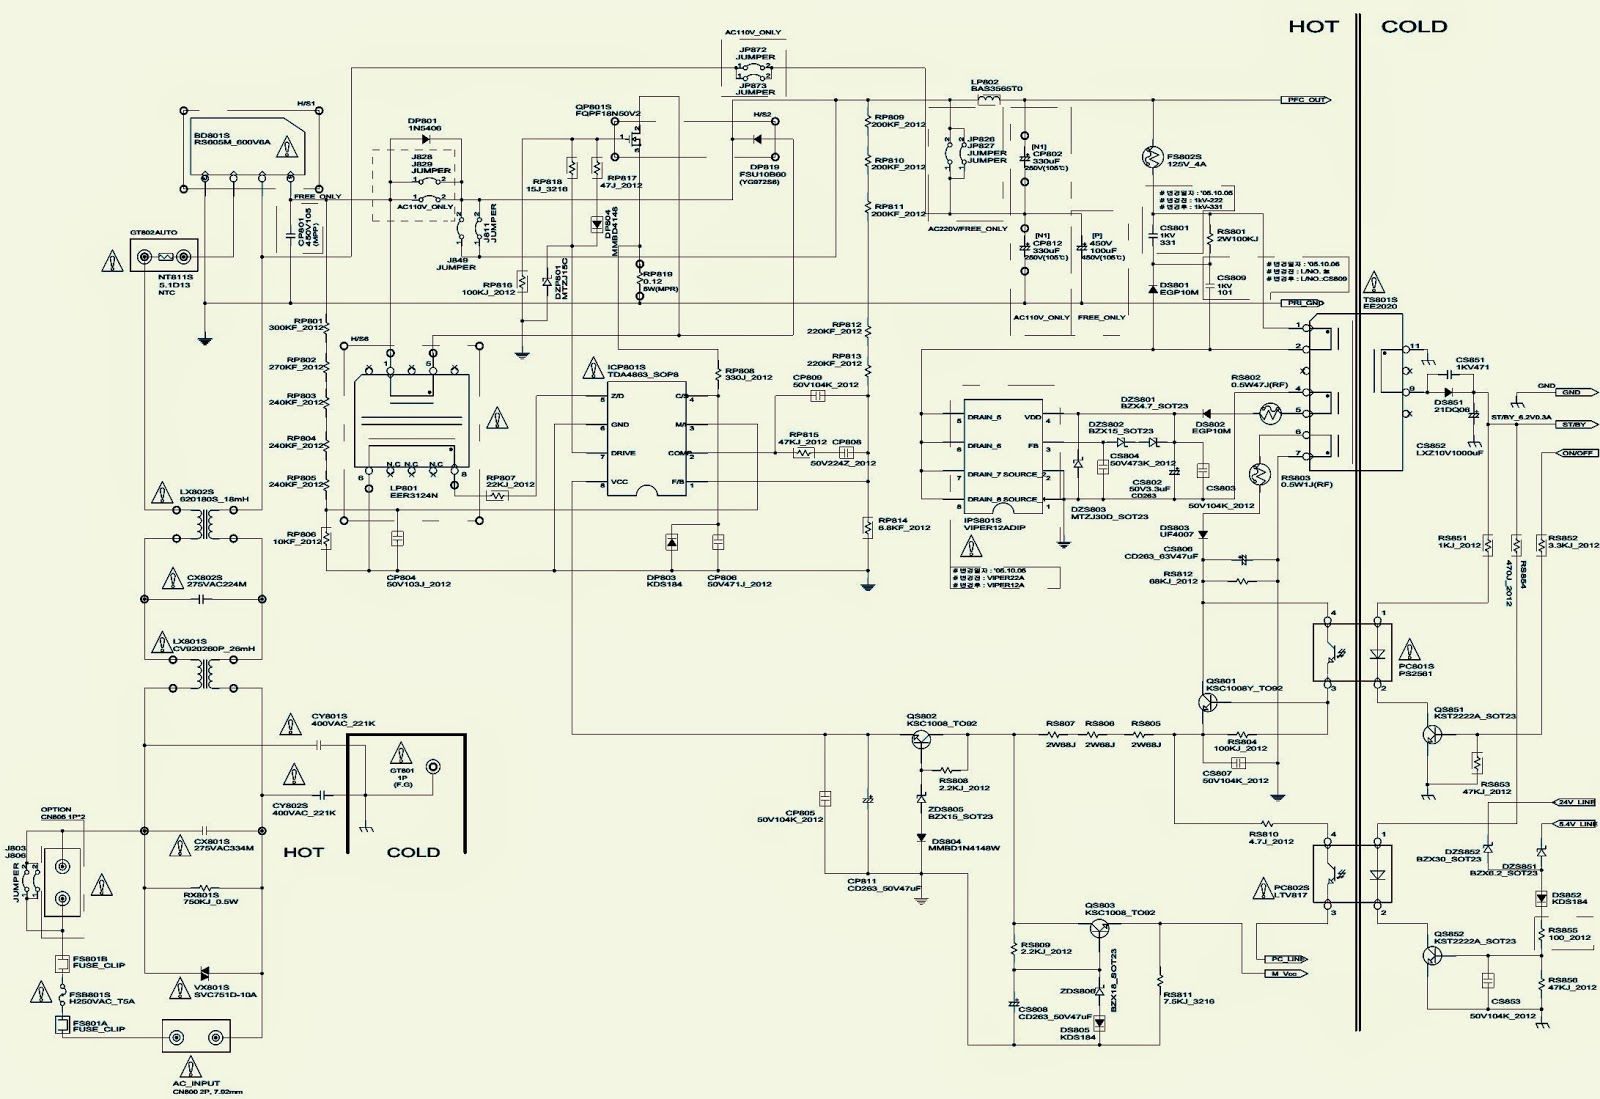 lcd tv smps samsung bn96 0b schematic circuit diagram samsung led tv circuit diagram free download samsung led tv power supply circuit diagram [ 1600 x 1099 Pixel ]